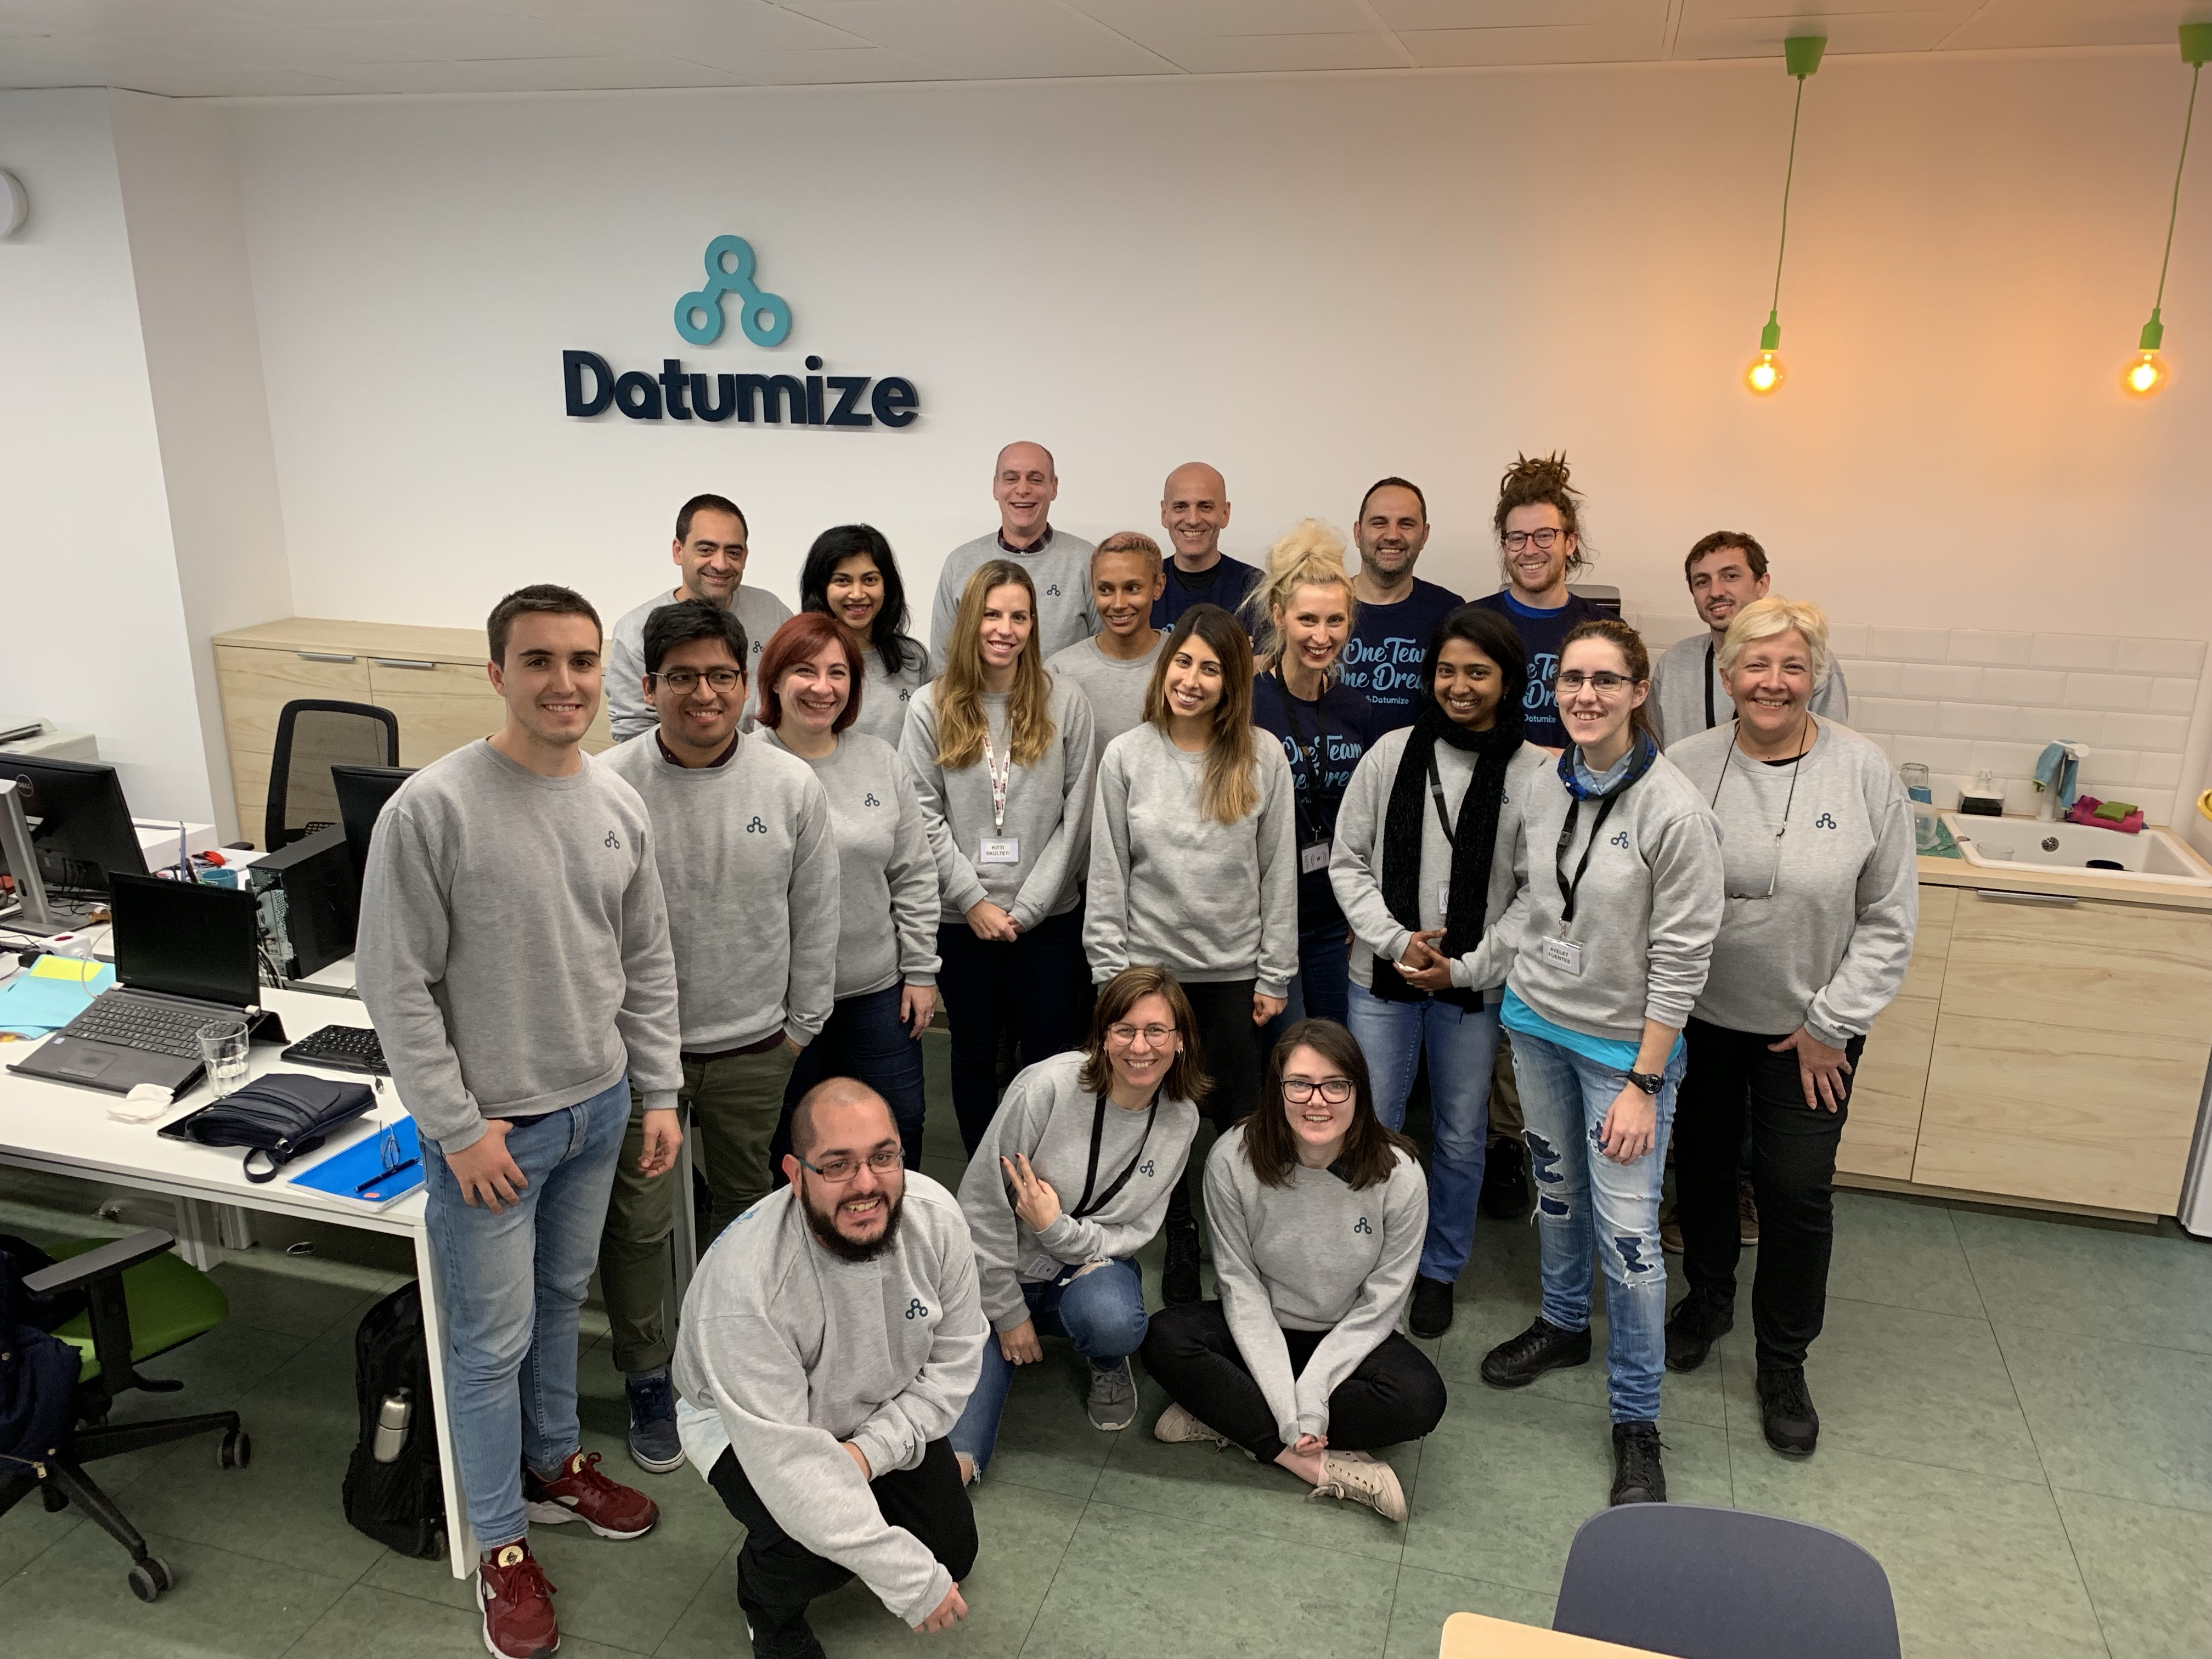 """Datumize, a Barcelona-based company that helps companies capture """"dark data"""" to make better business decisions, has announced a €1.8 million Series A round led by Alma Mundi Ventures, a Spanish VC firm specialized in deep technology companies."""